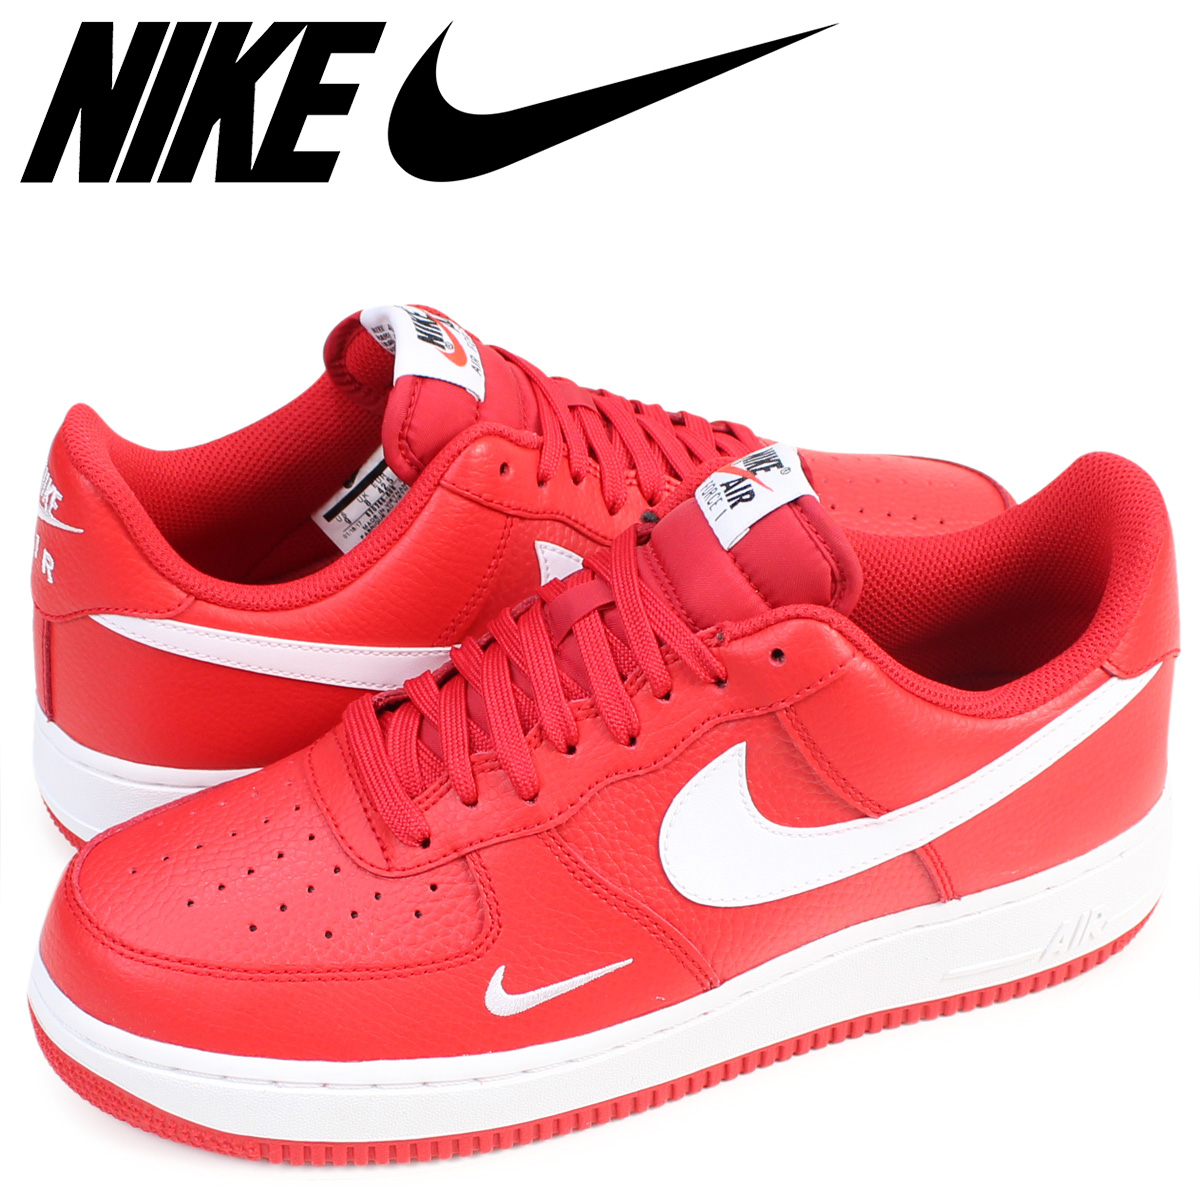 Nike NIKE air force 1 sneakers AIR FORCE 1 LOW 07 men's low 820,266-606  shoes red [the 6/15 additional arrival]